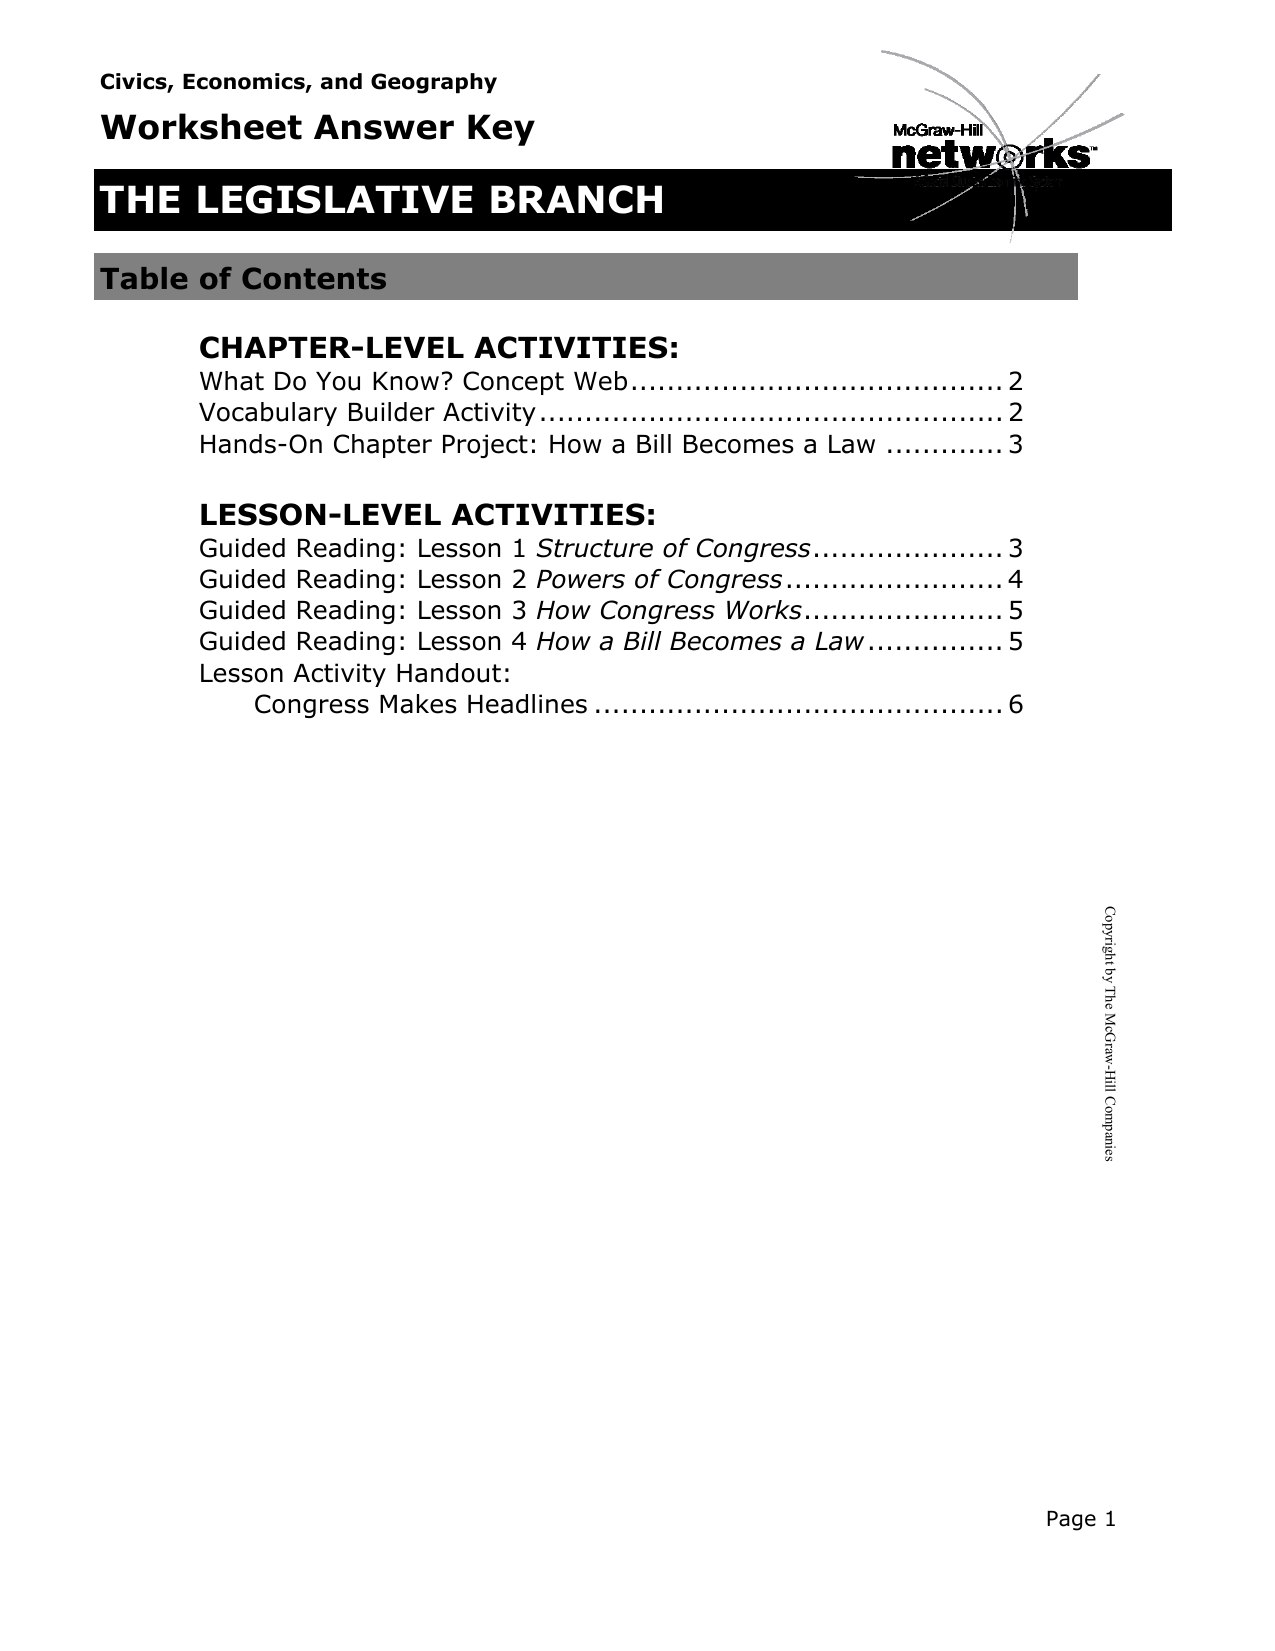 Worksheets The Mcgraw-hill Companies Worksheet Answers the legislative branch mcgraw